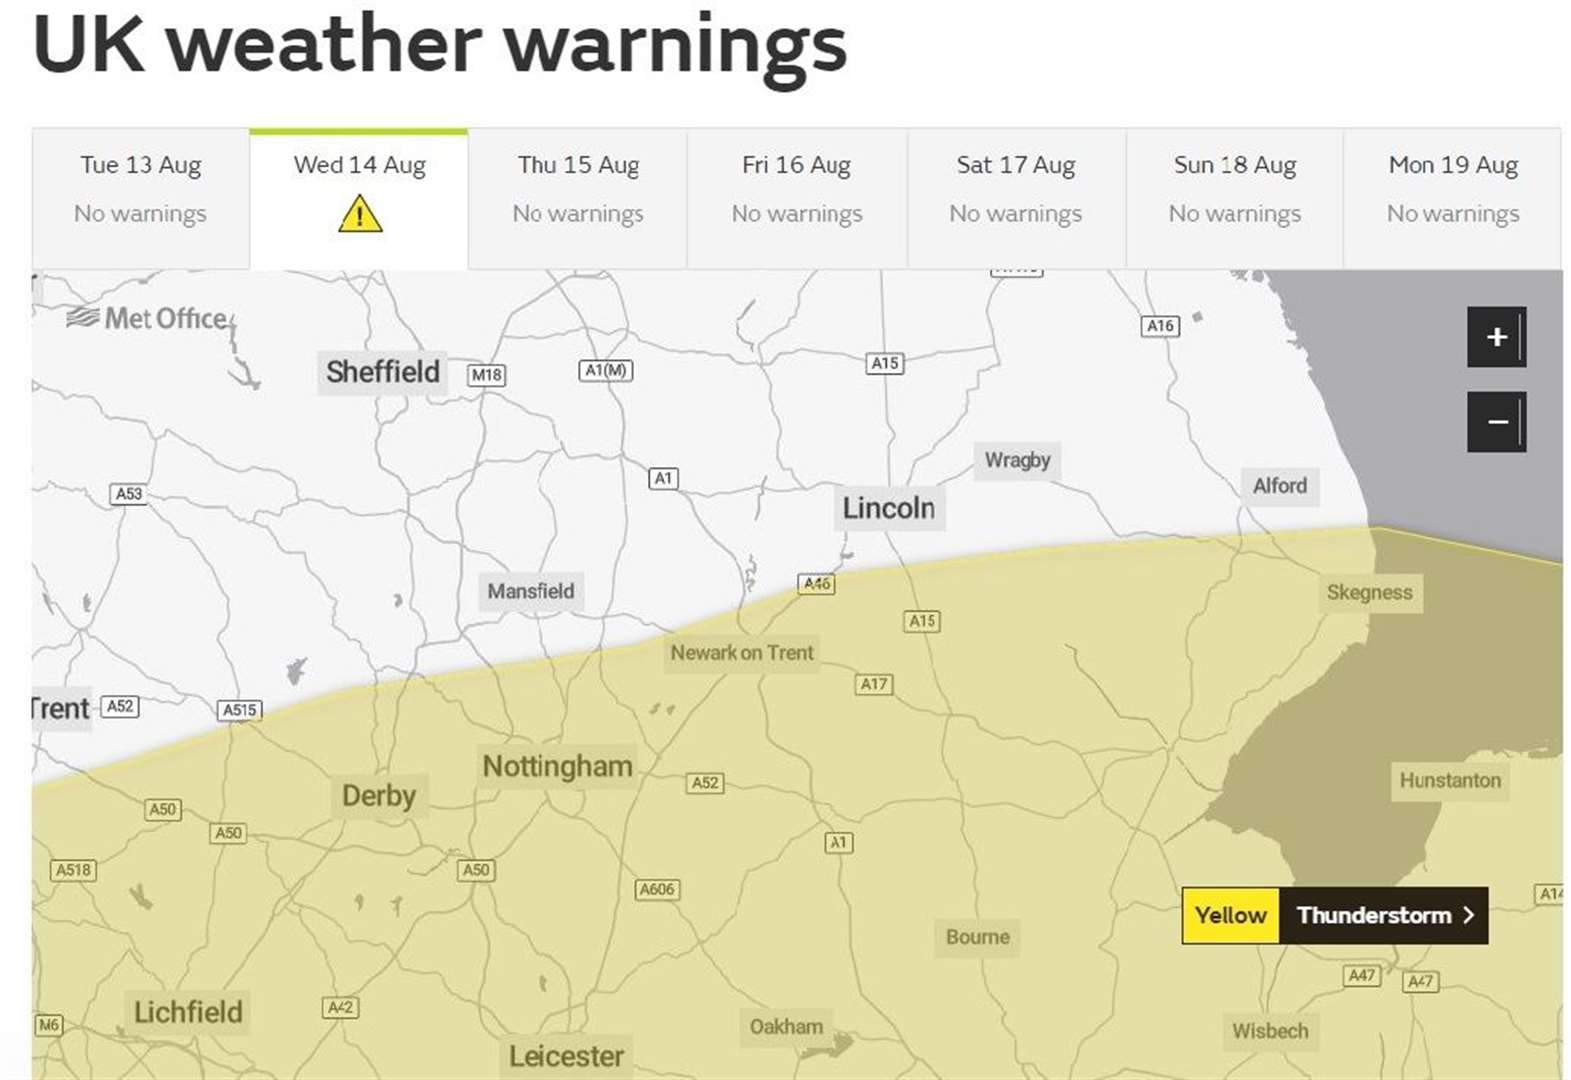 Another yellow thunderstorm warning